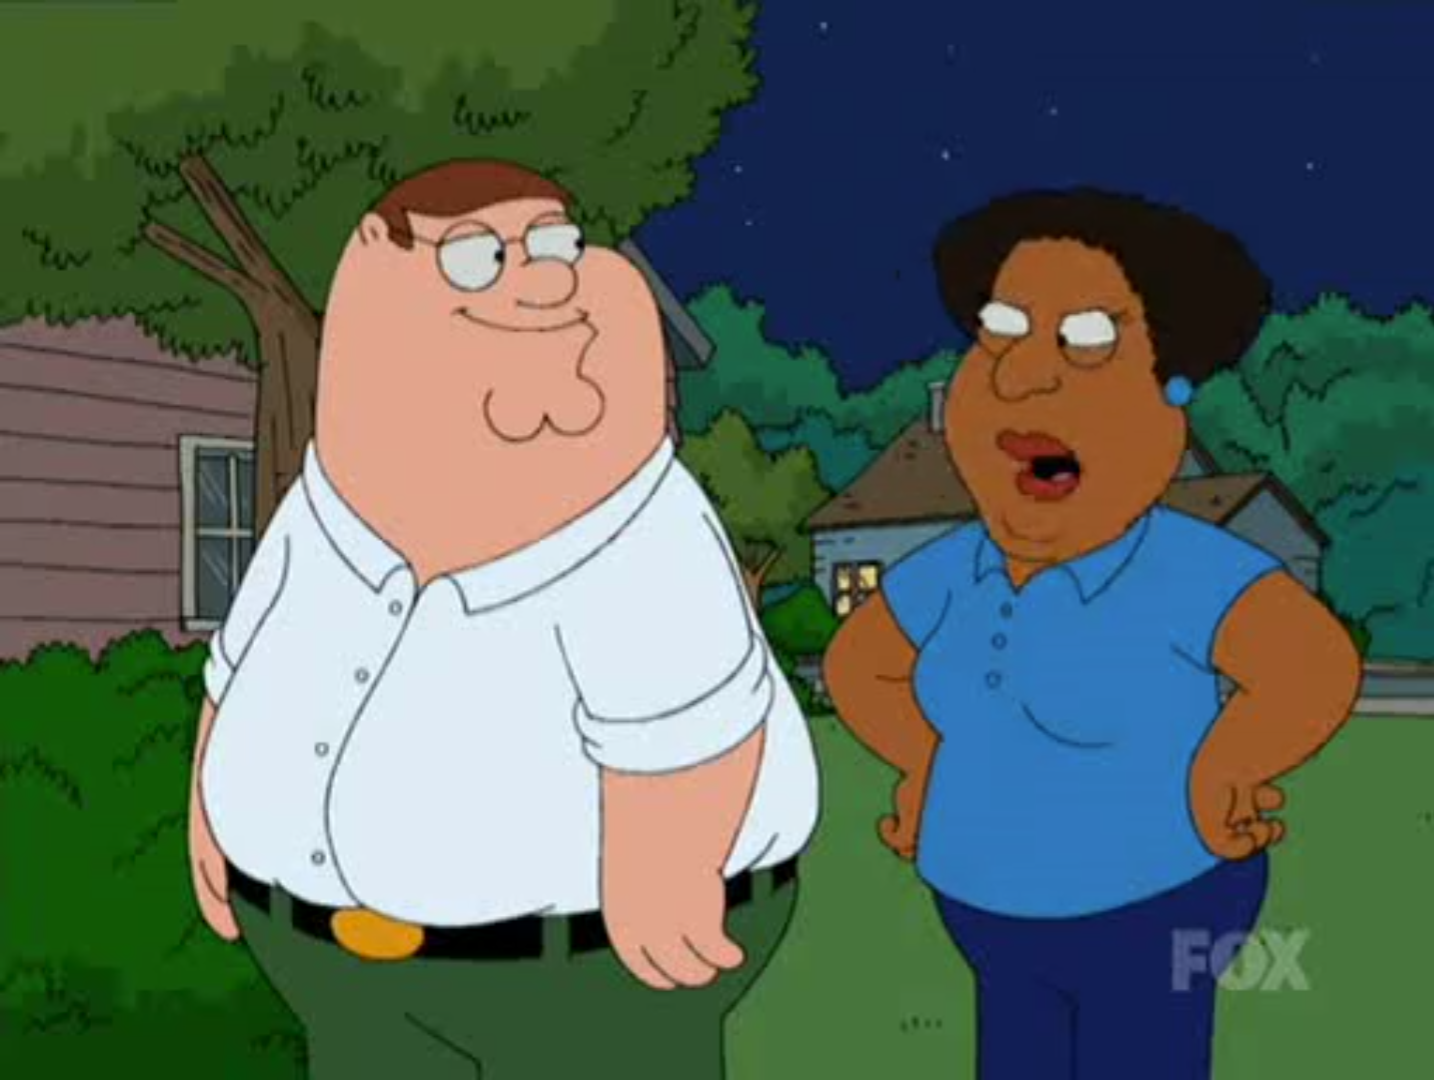 Peter and Loretta's Relationship